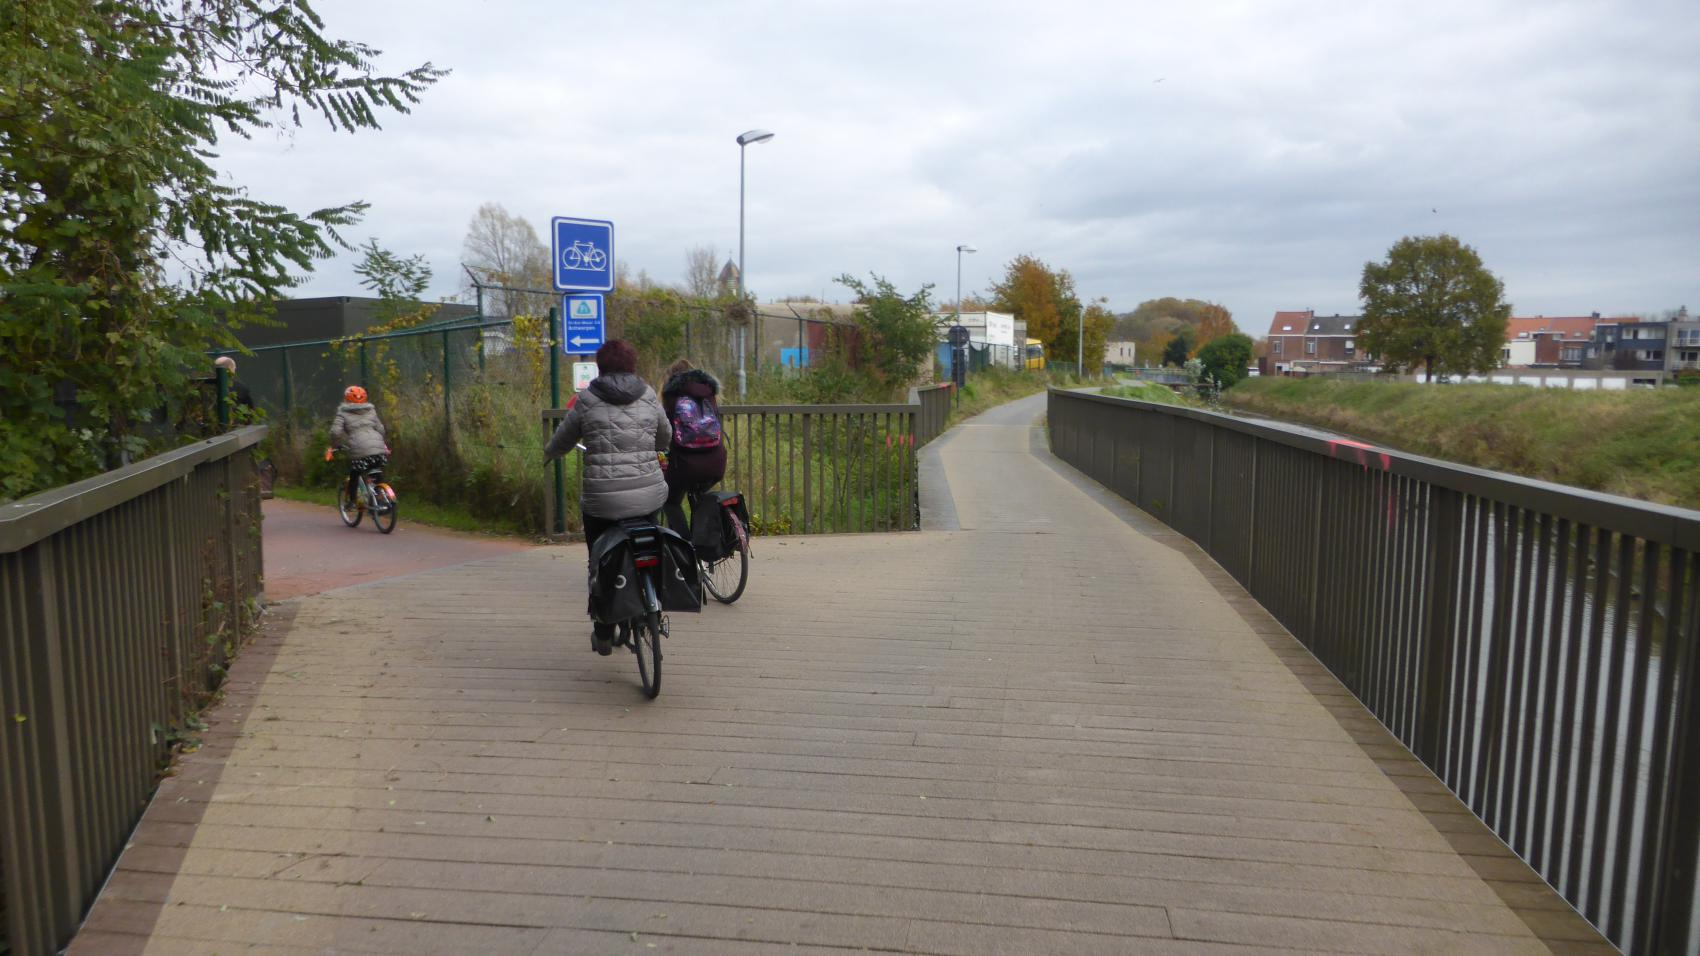 Eastern exit from the bridge. F1 turns north (left) towards Antwerp, local cycle path continues along Vrouwvliet to Pasbrug.